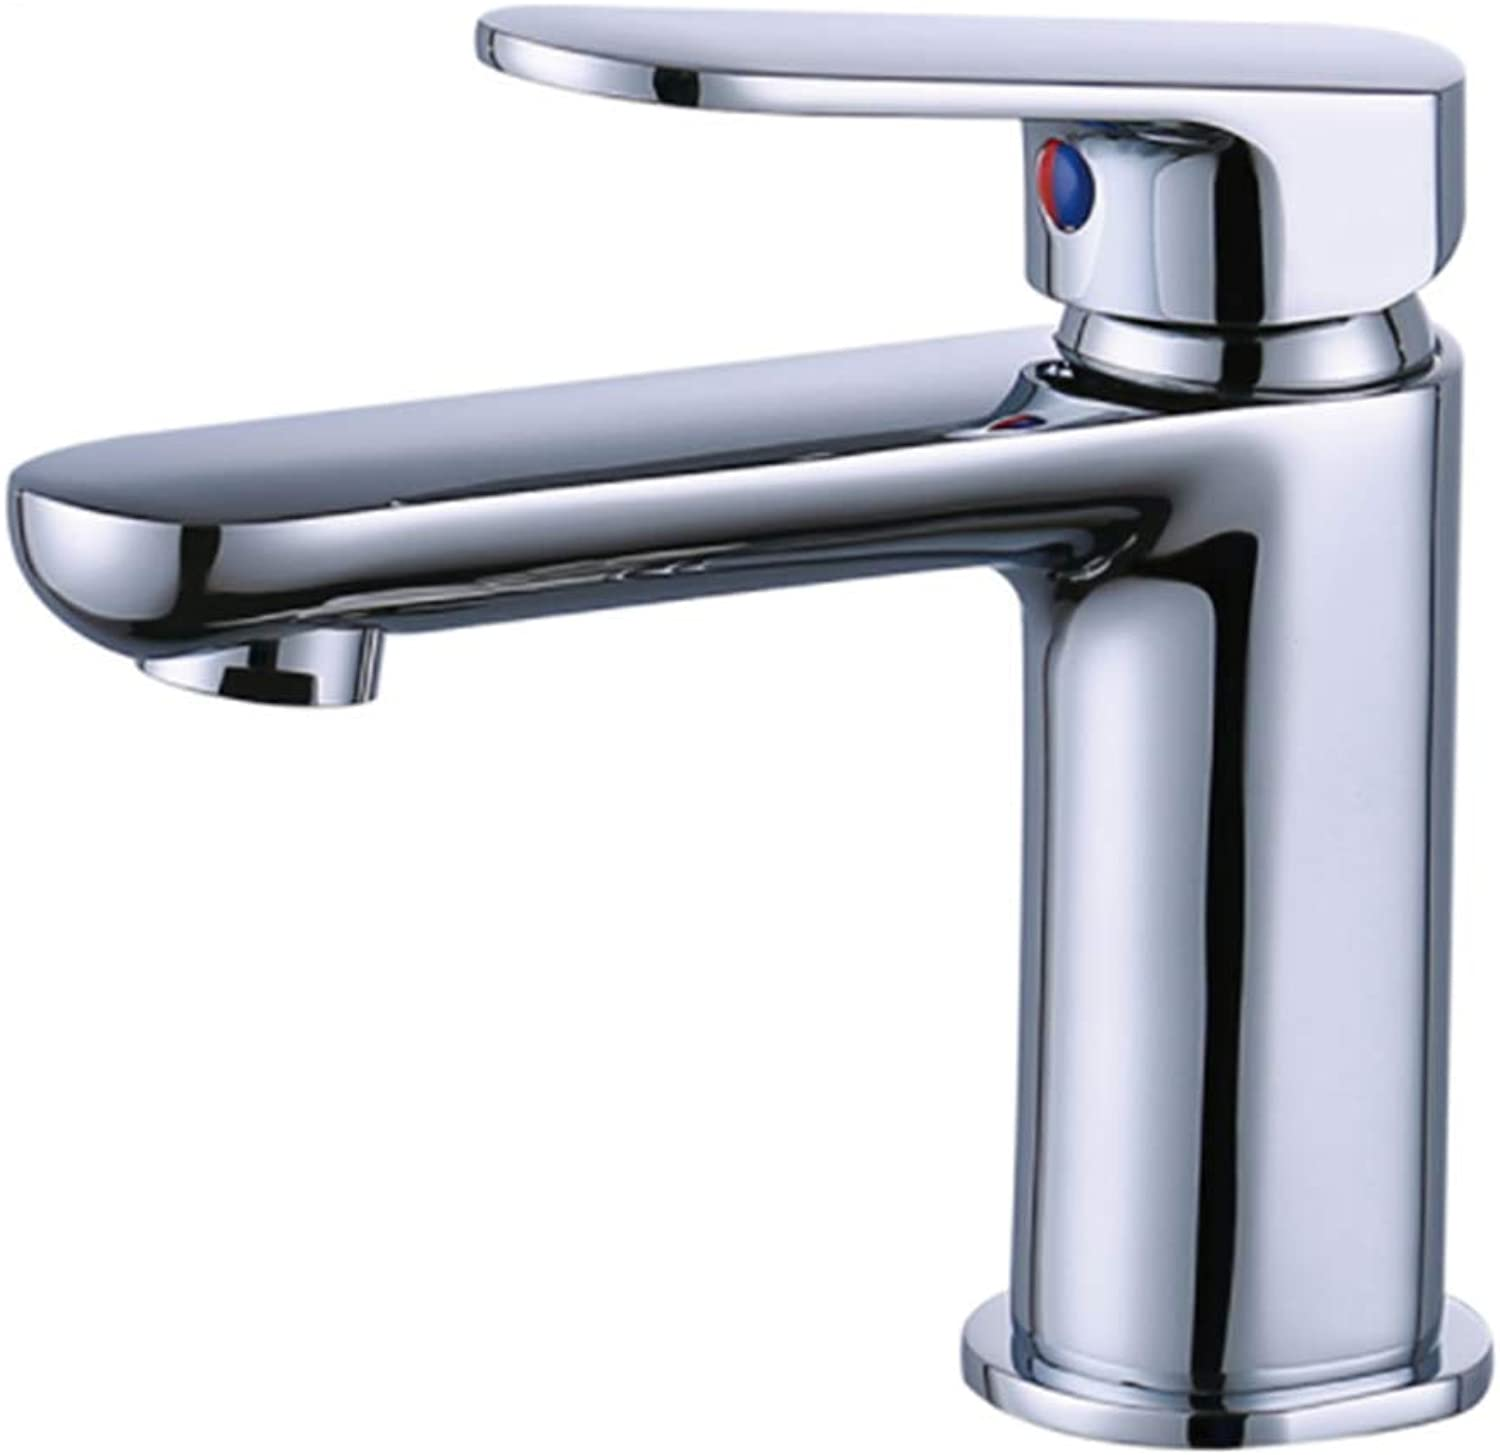 Taps Kitchen Basin Bathroom Washroombath Faucet Brass Bathroom Mixer Tap Wash Basin Mixer Taps Water Tap Bathroom